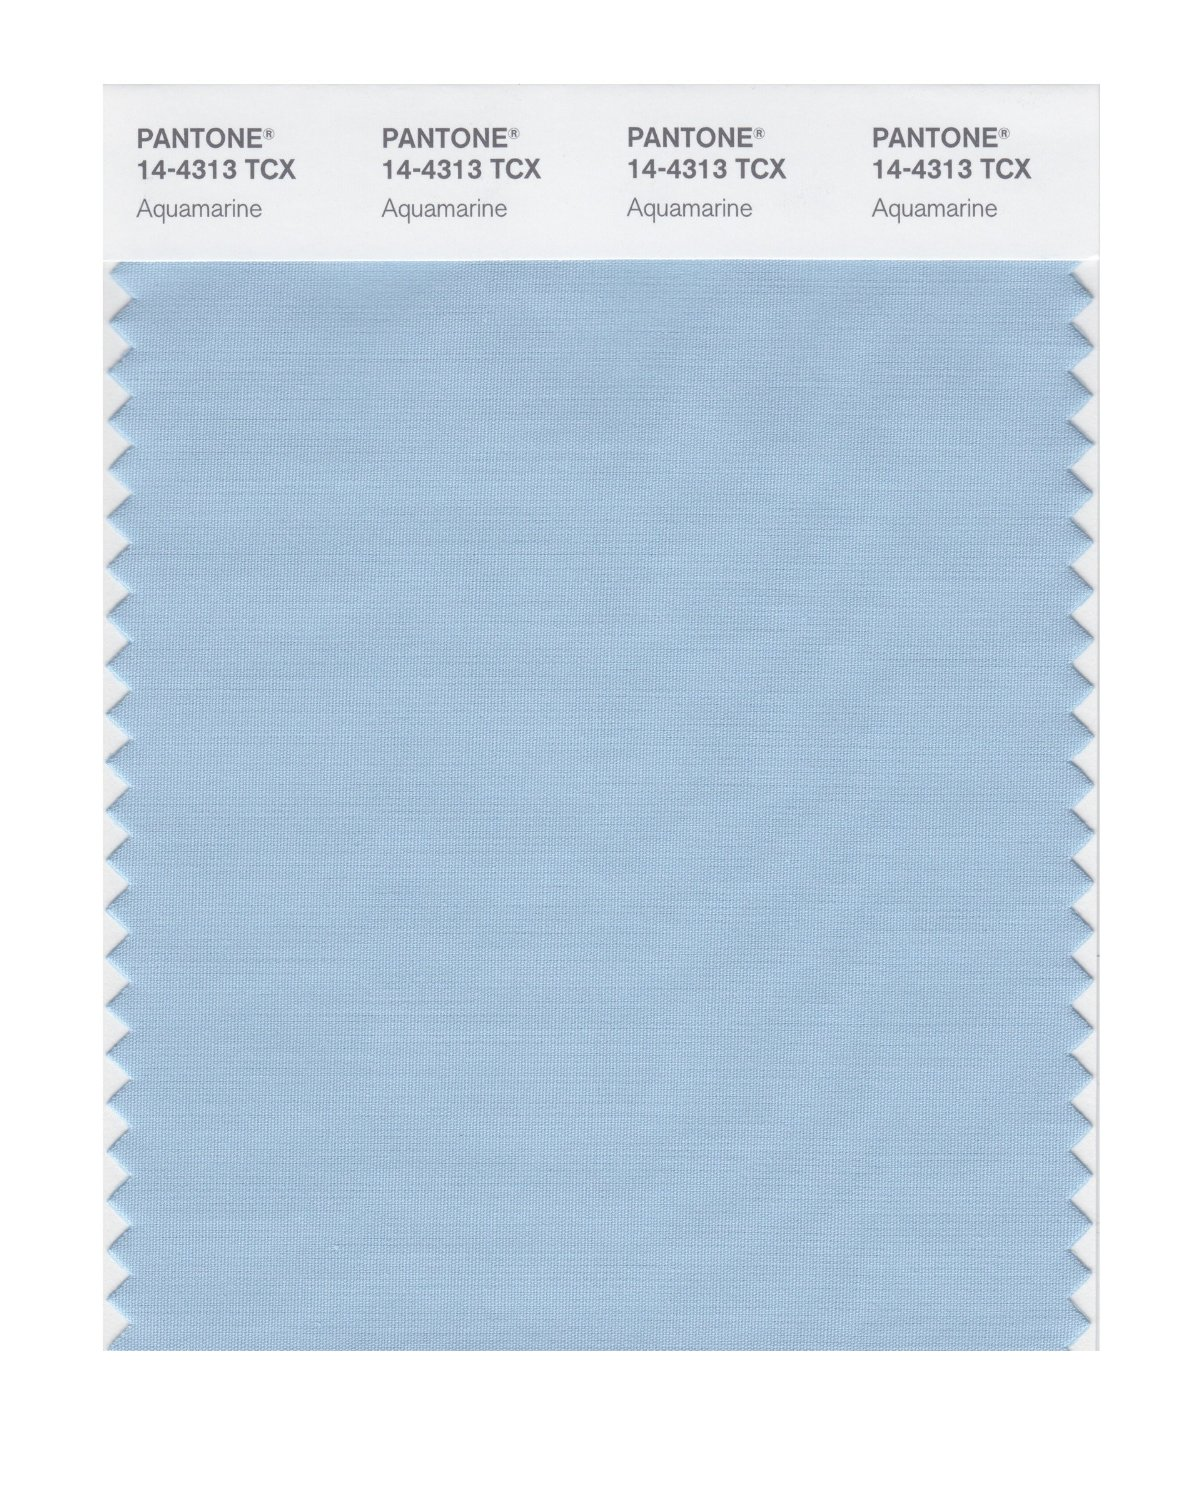 Pantone Smart Swatch 14-4313 Aquamarine